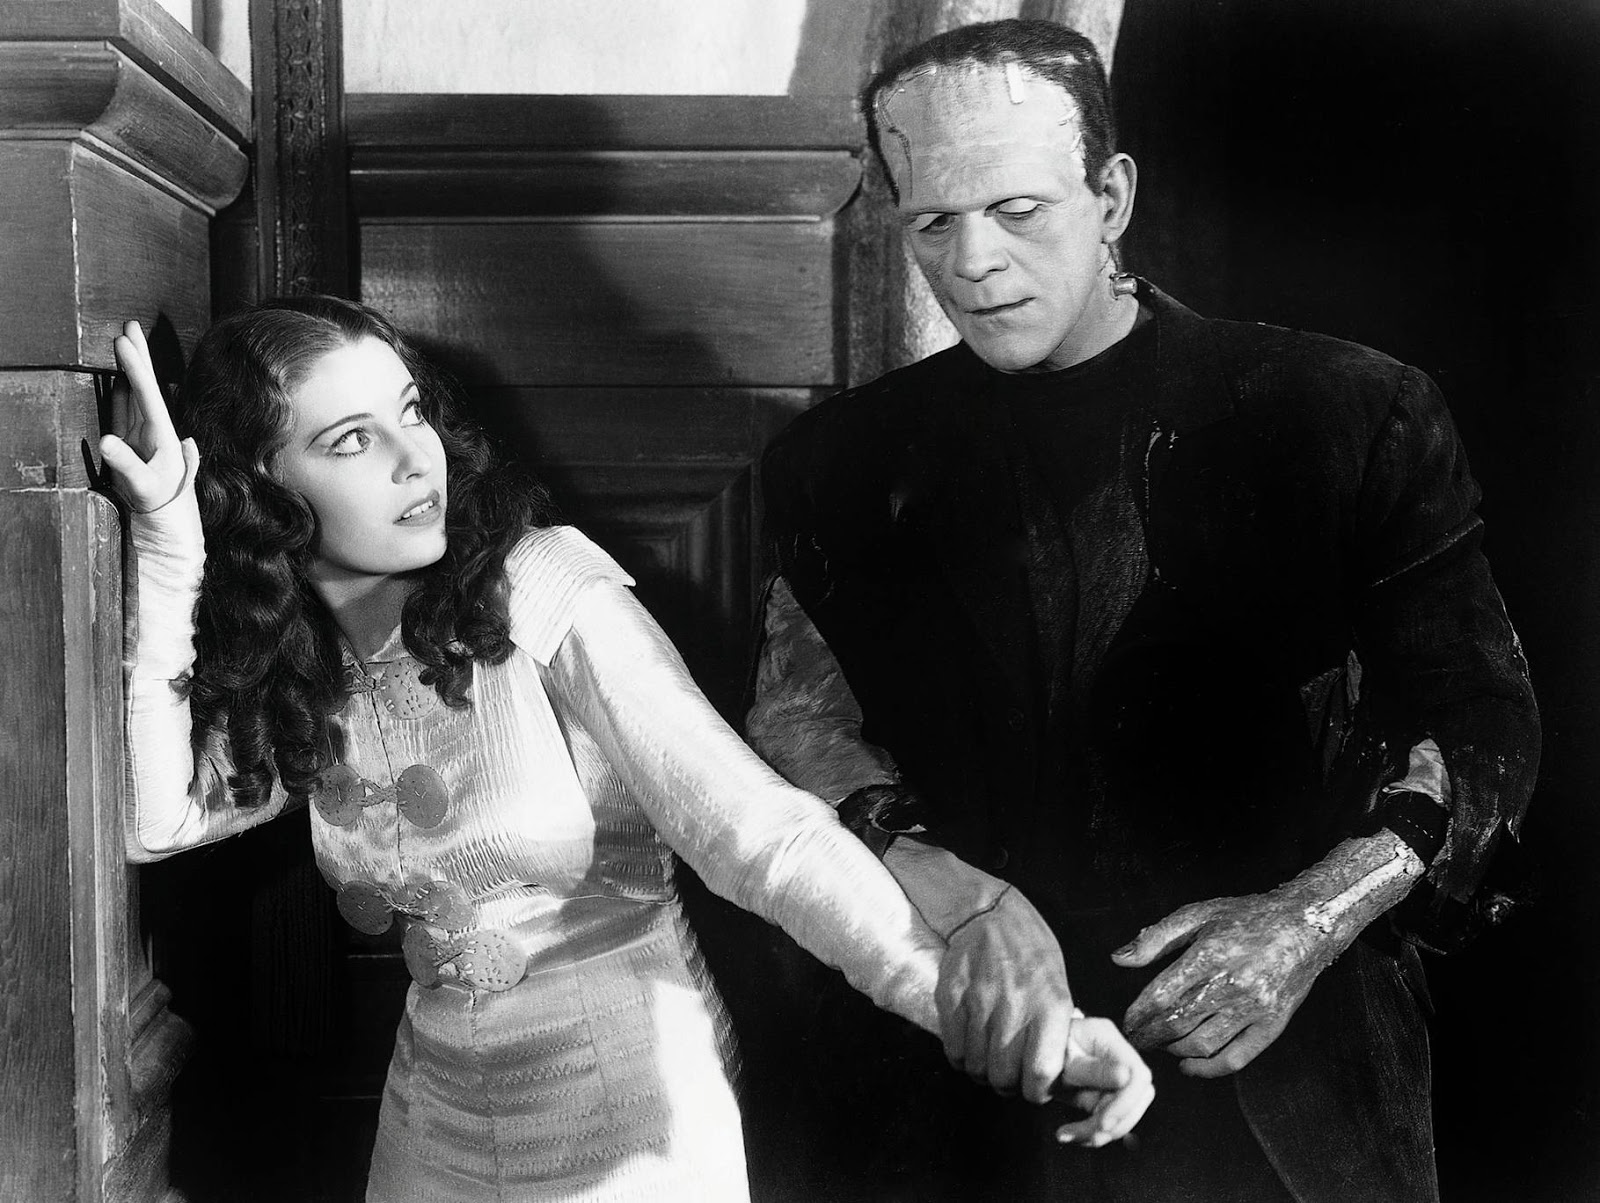 The idea of Monsters and Monstrosity in Frankenstein Essay